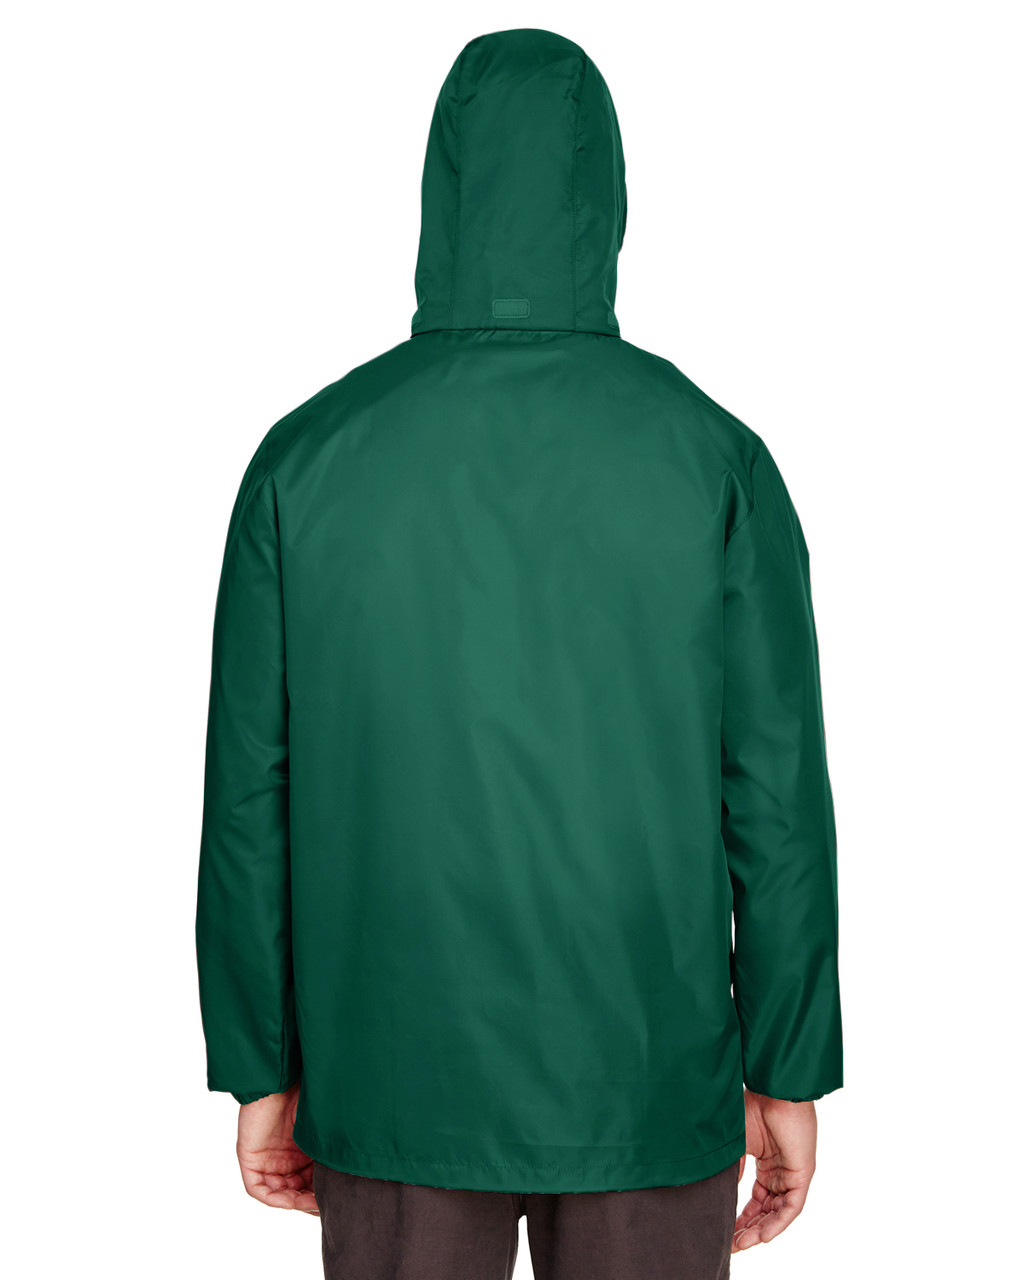 Sport Forest, Back - TT73 Team 365 Adult Zone Protect Lightweight Jacket   BlankClothing.ca